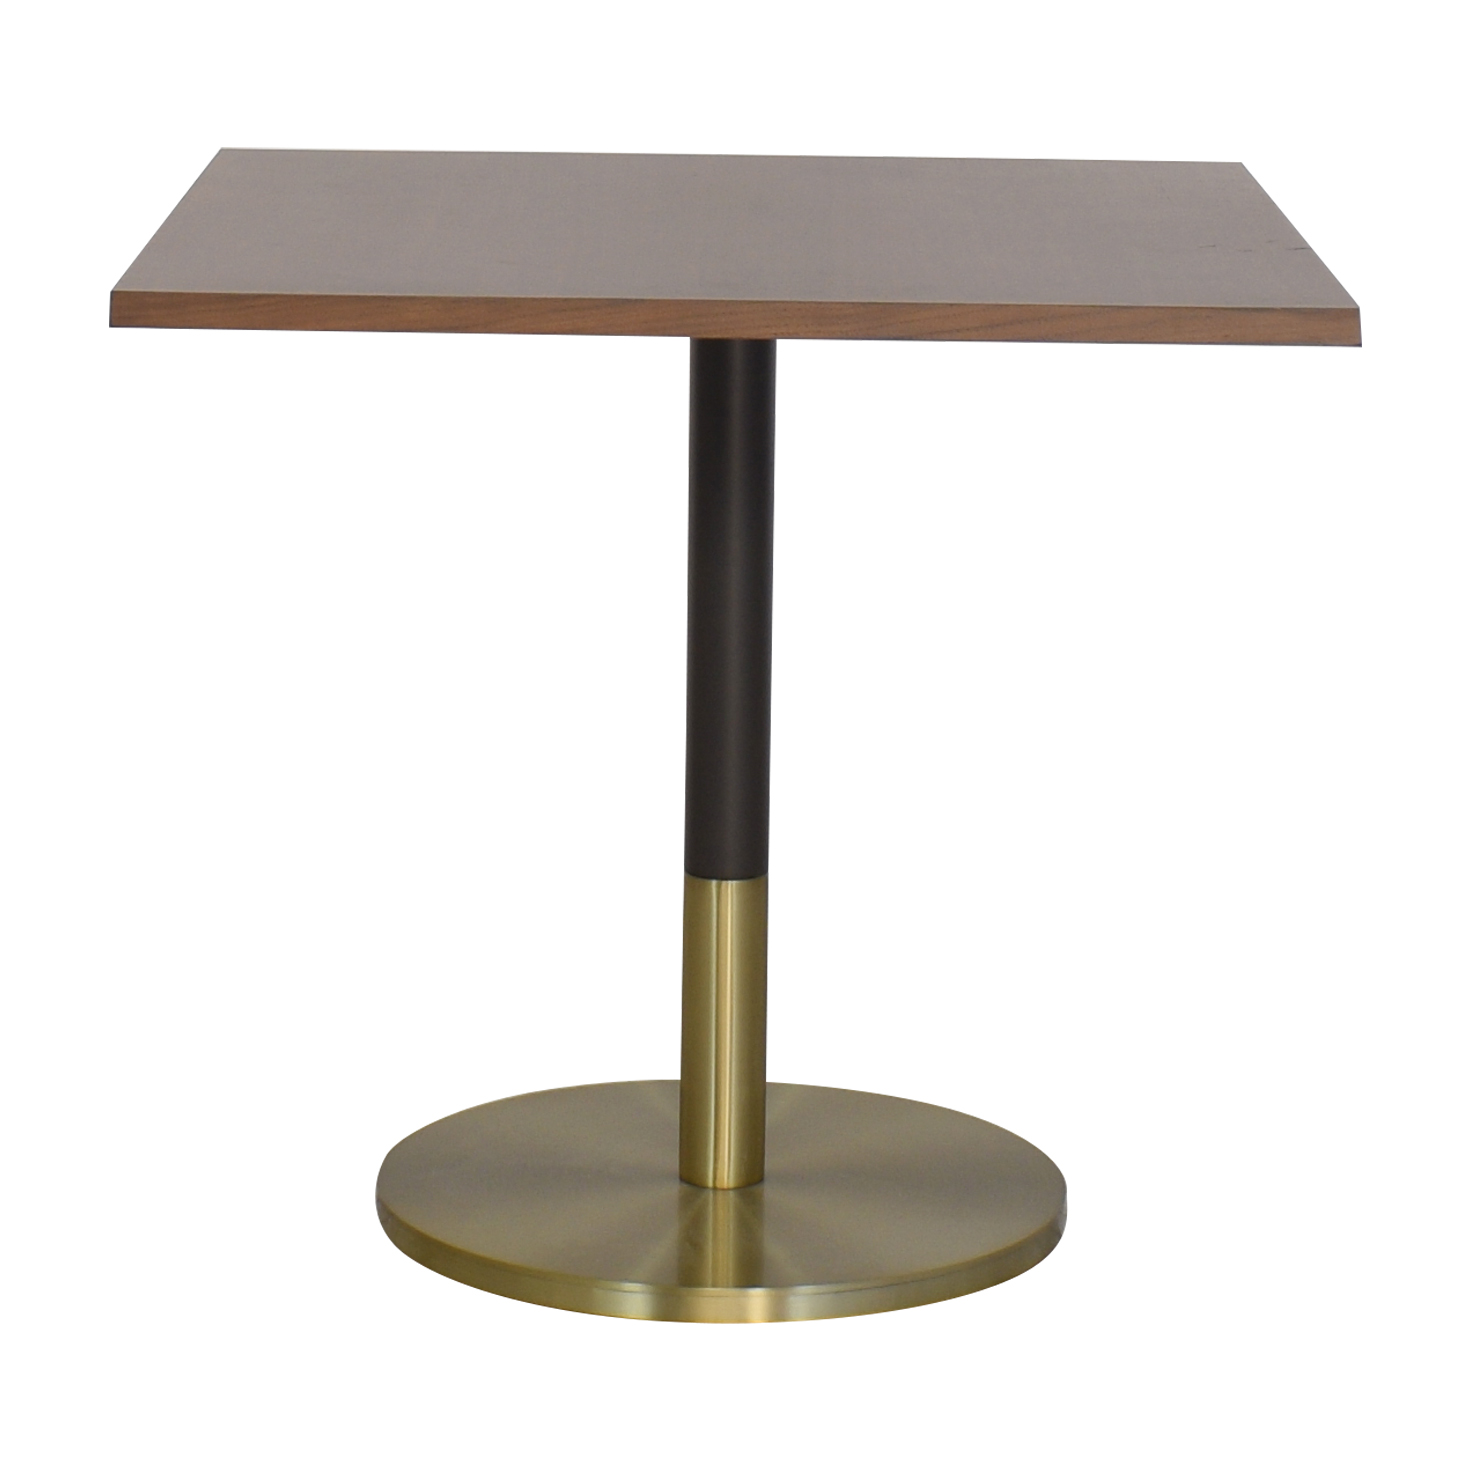 West Elm West Elm Square Bistro Table used